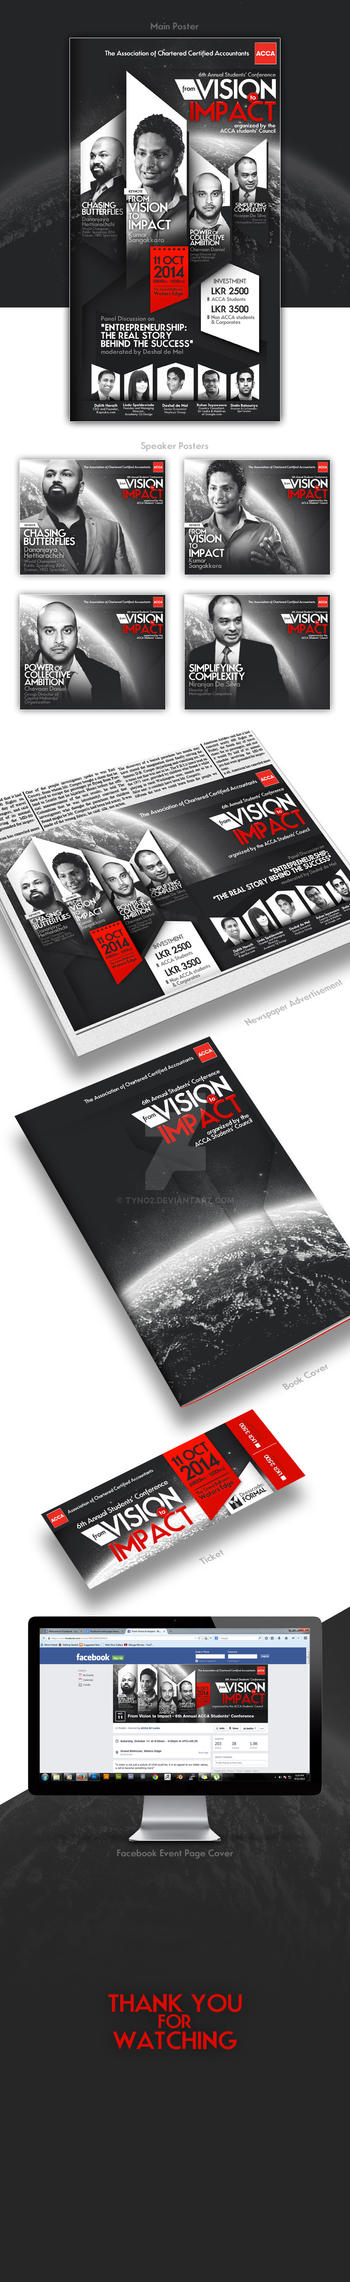 Vision to Impact Poster by tyno2